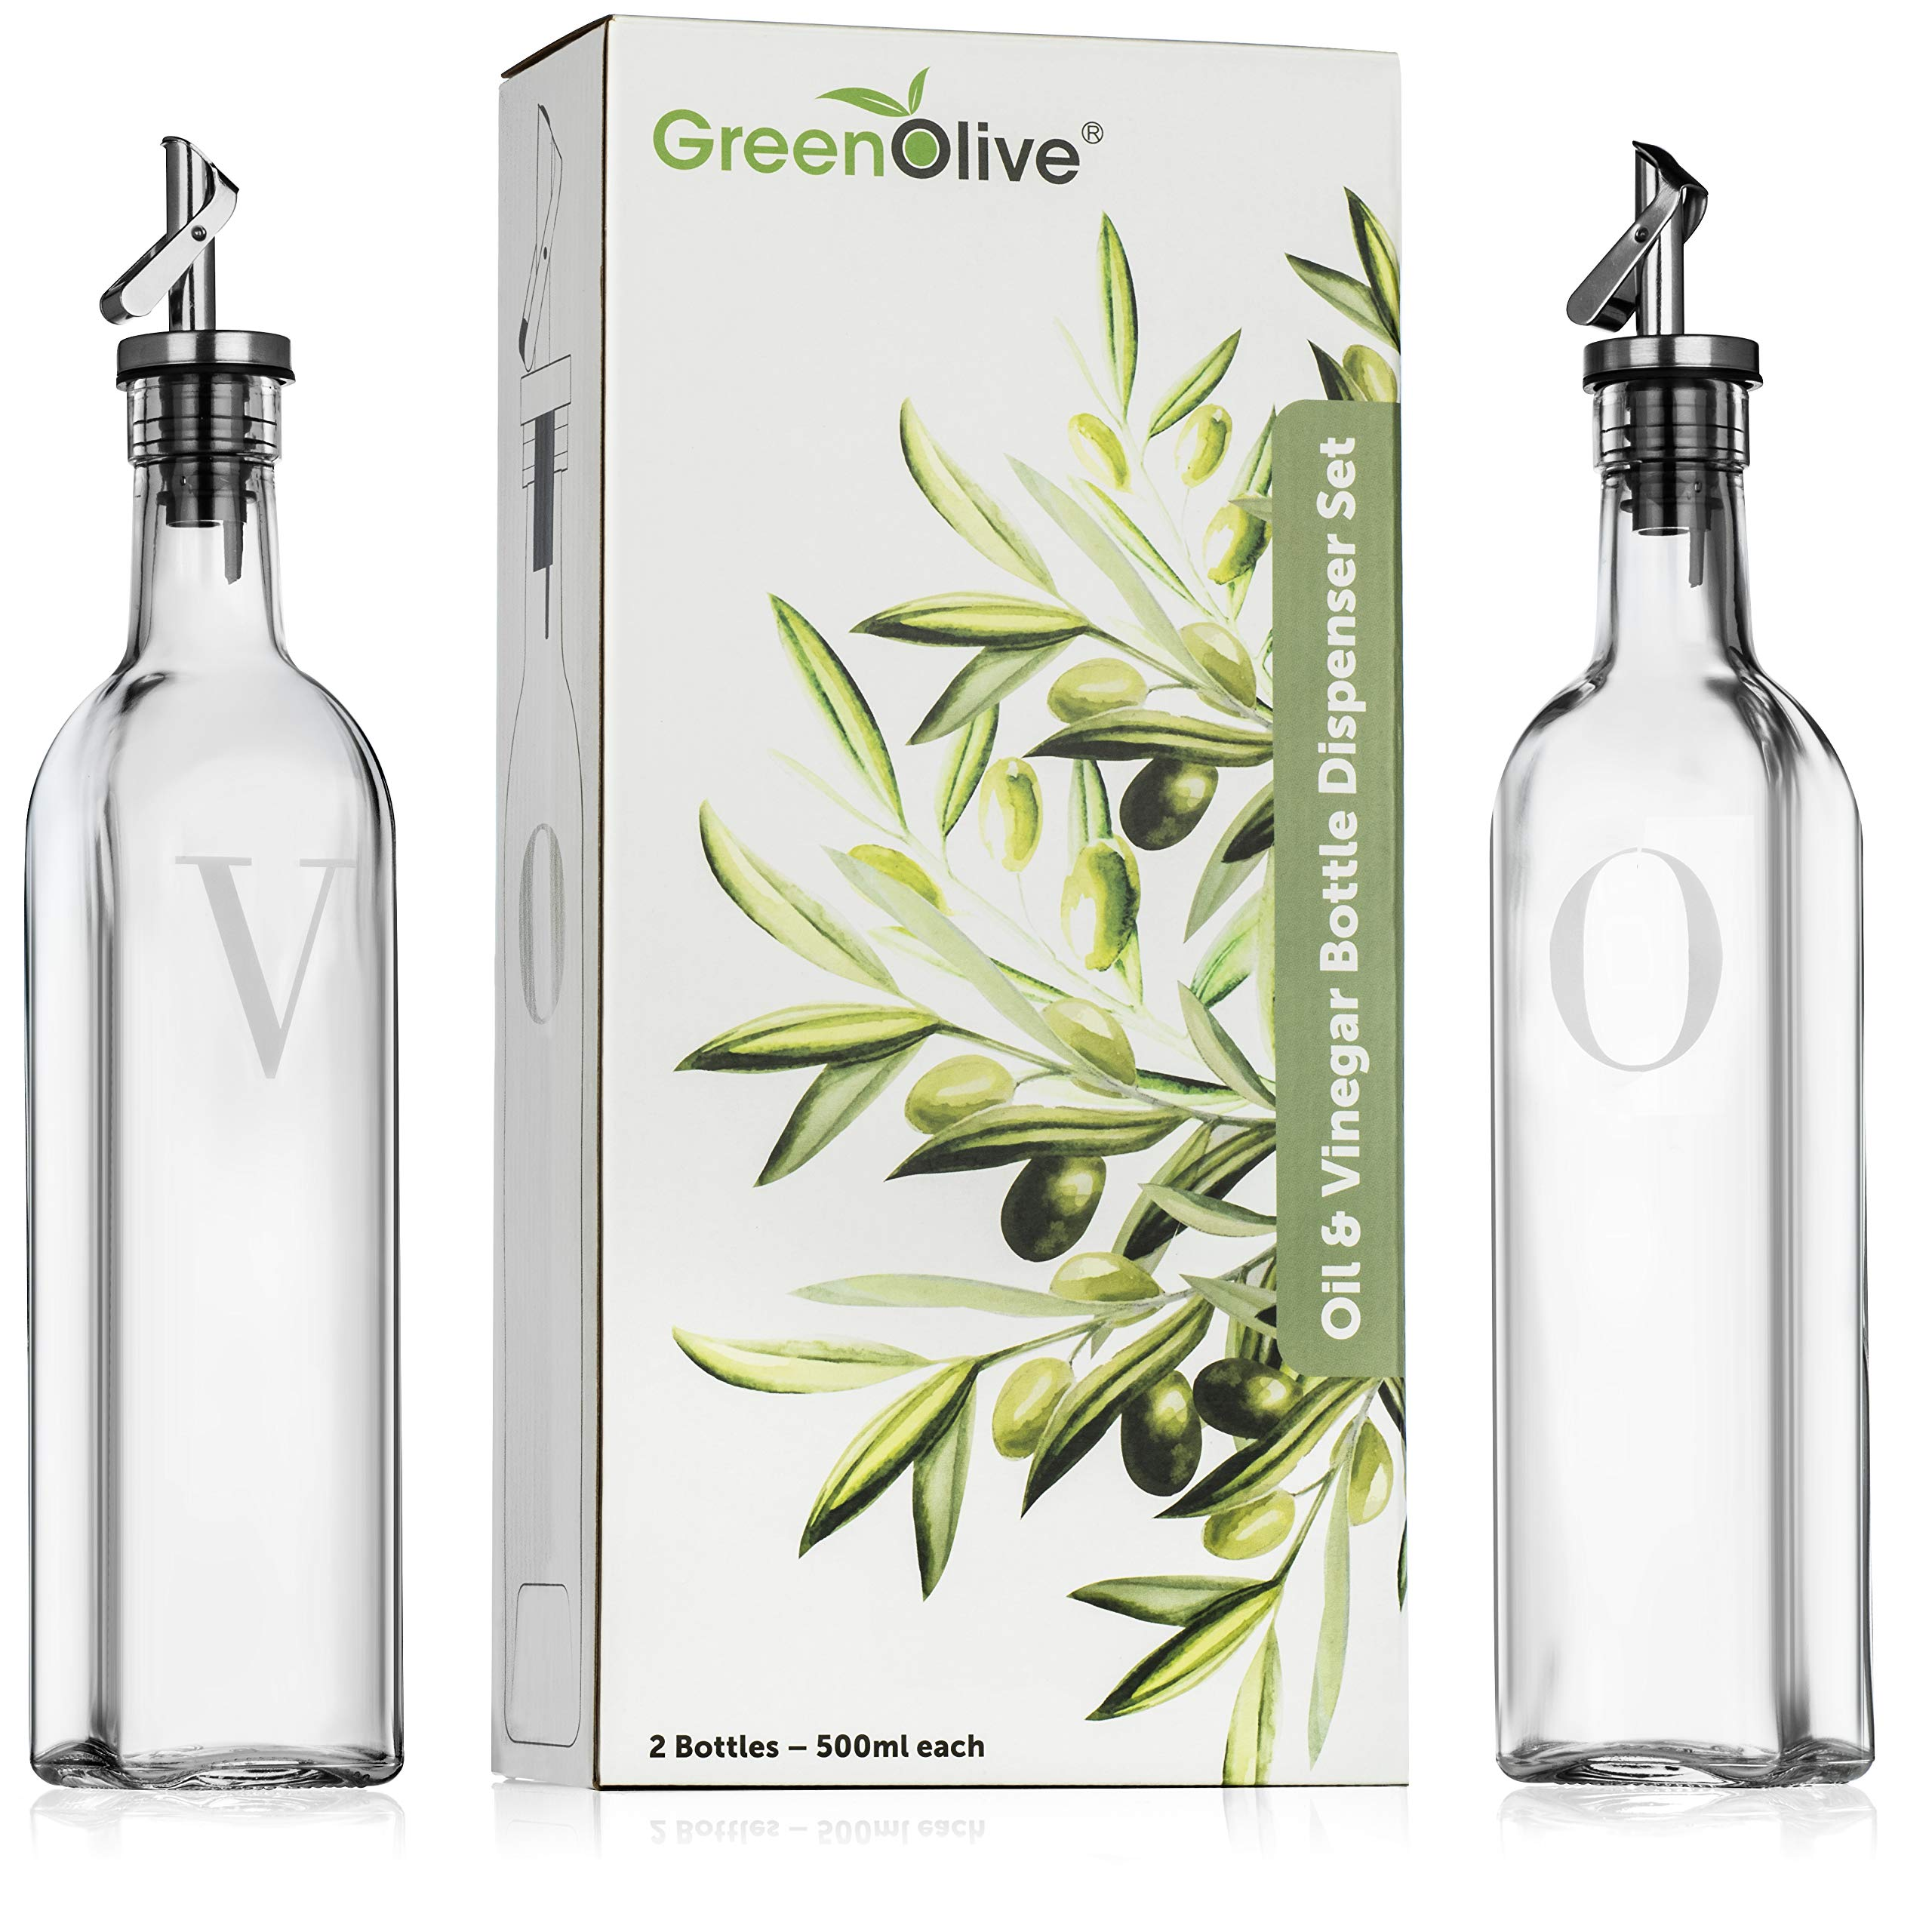 Olive Oil and Vinegar Dispenser Set - 500 ml/17oz - Perfect Glass Vinegar and Olive Oil Dispenser Bottles with Stopper for Cooking BPA Free Gravity Spout by GREENOLIVE